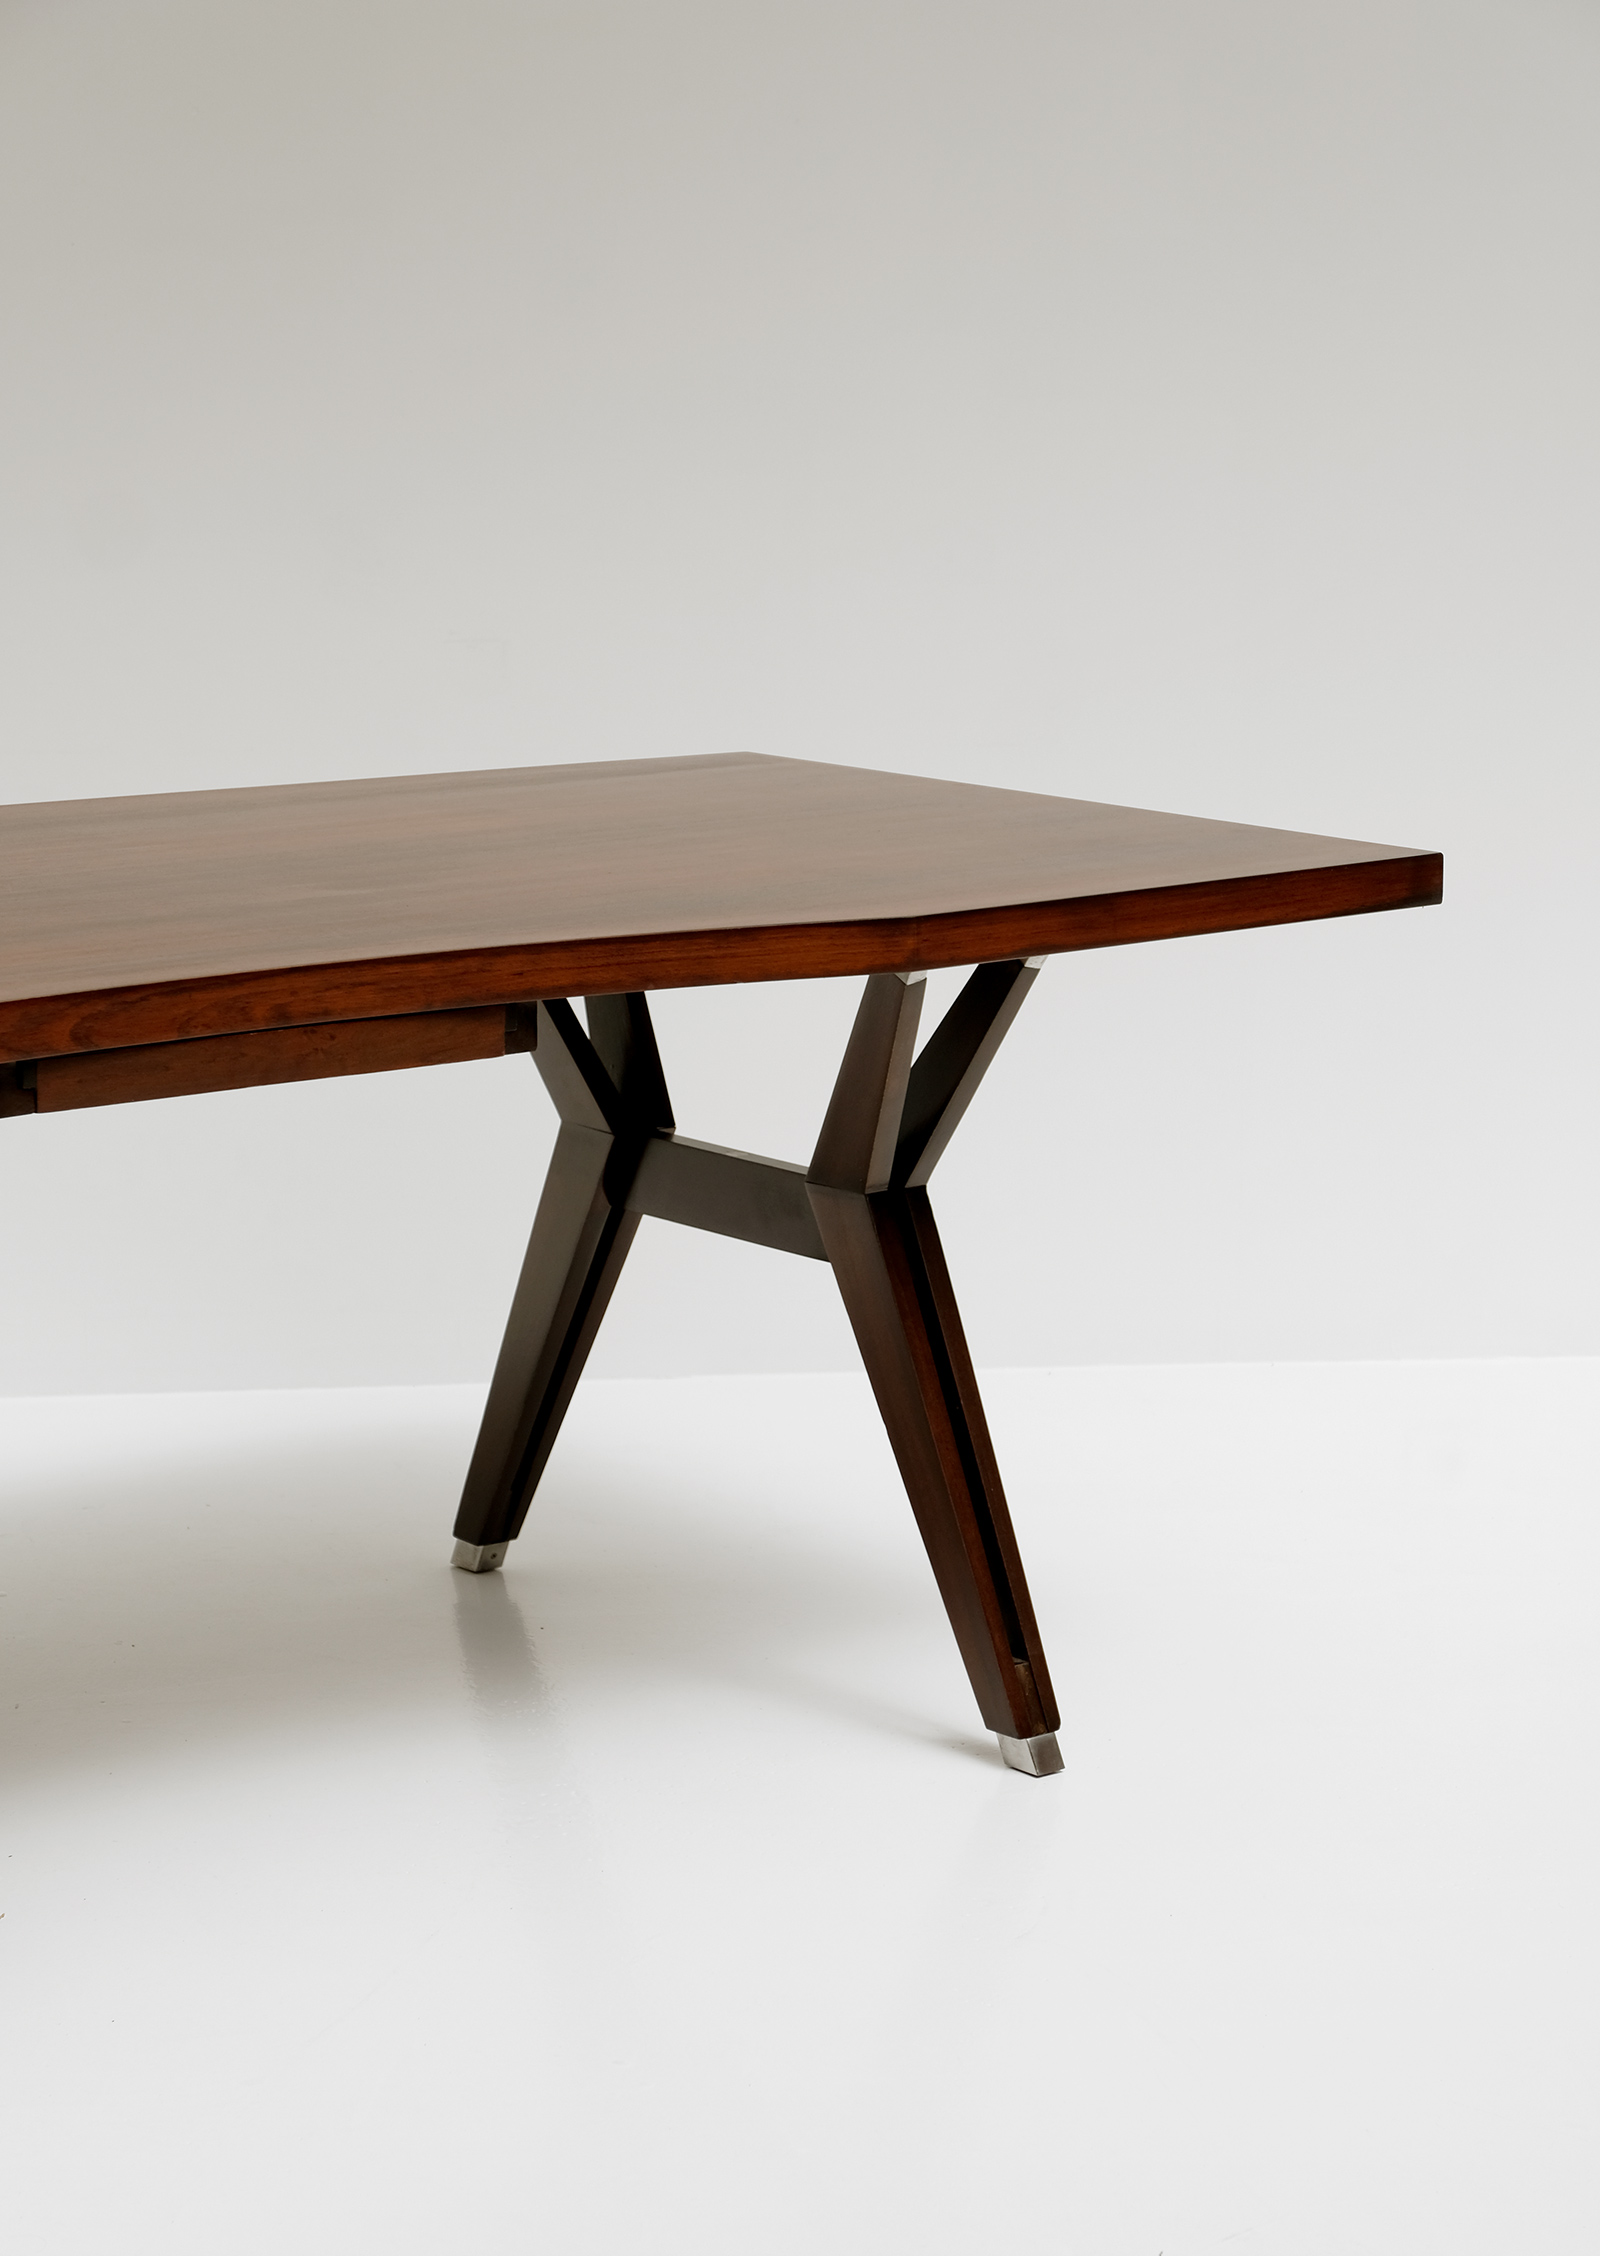 Executive Desk by Ico Parisi for MIM 1958image 11